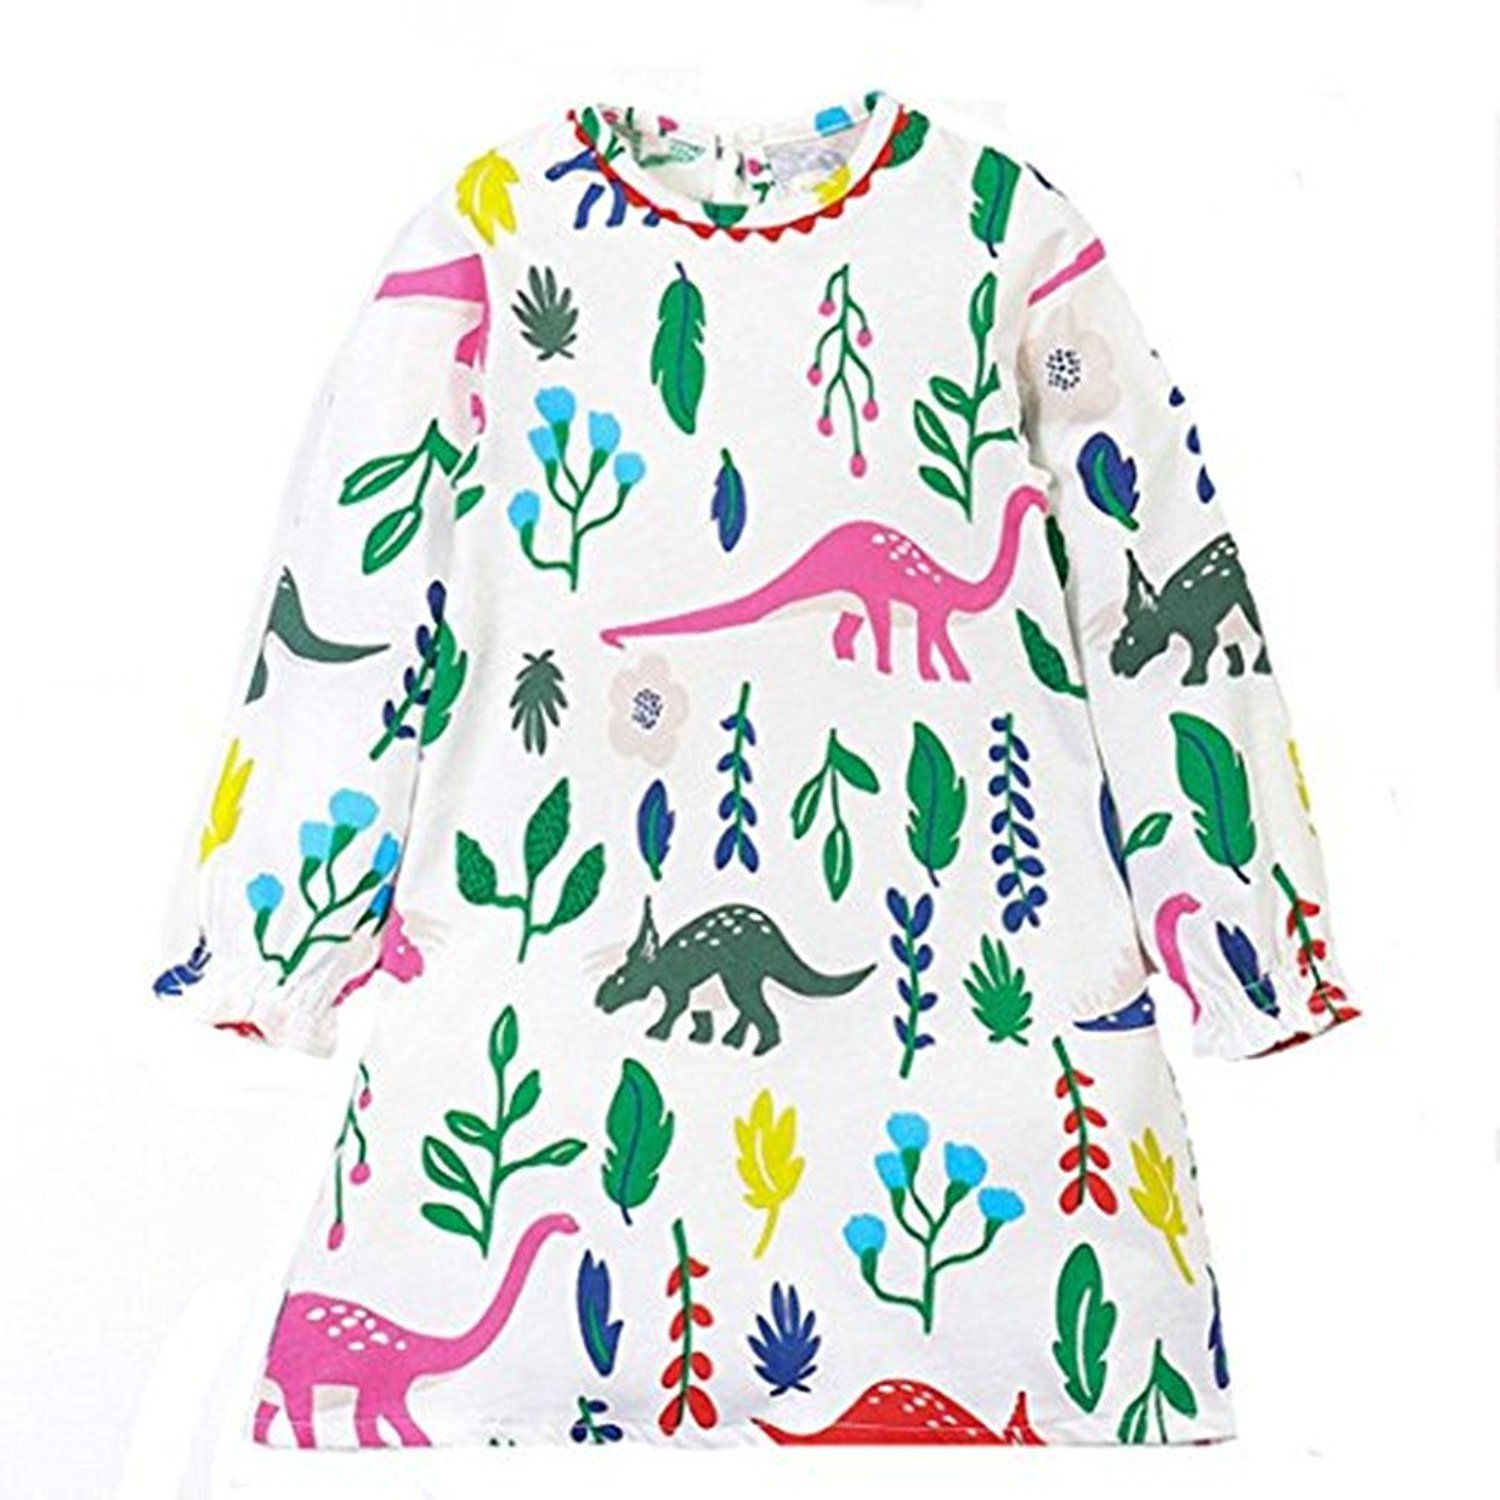 Webla Toddler Kids Girl Dinosaurs Floral Printed Long Sleeve Clothing Autumn Dress for 1-7 Years Old 3-4T